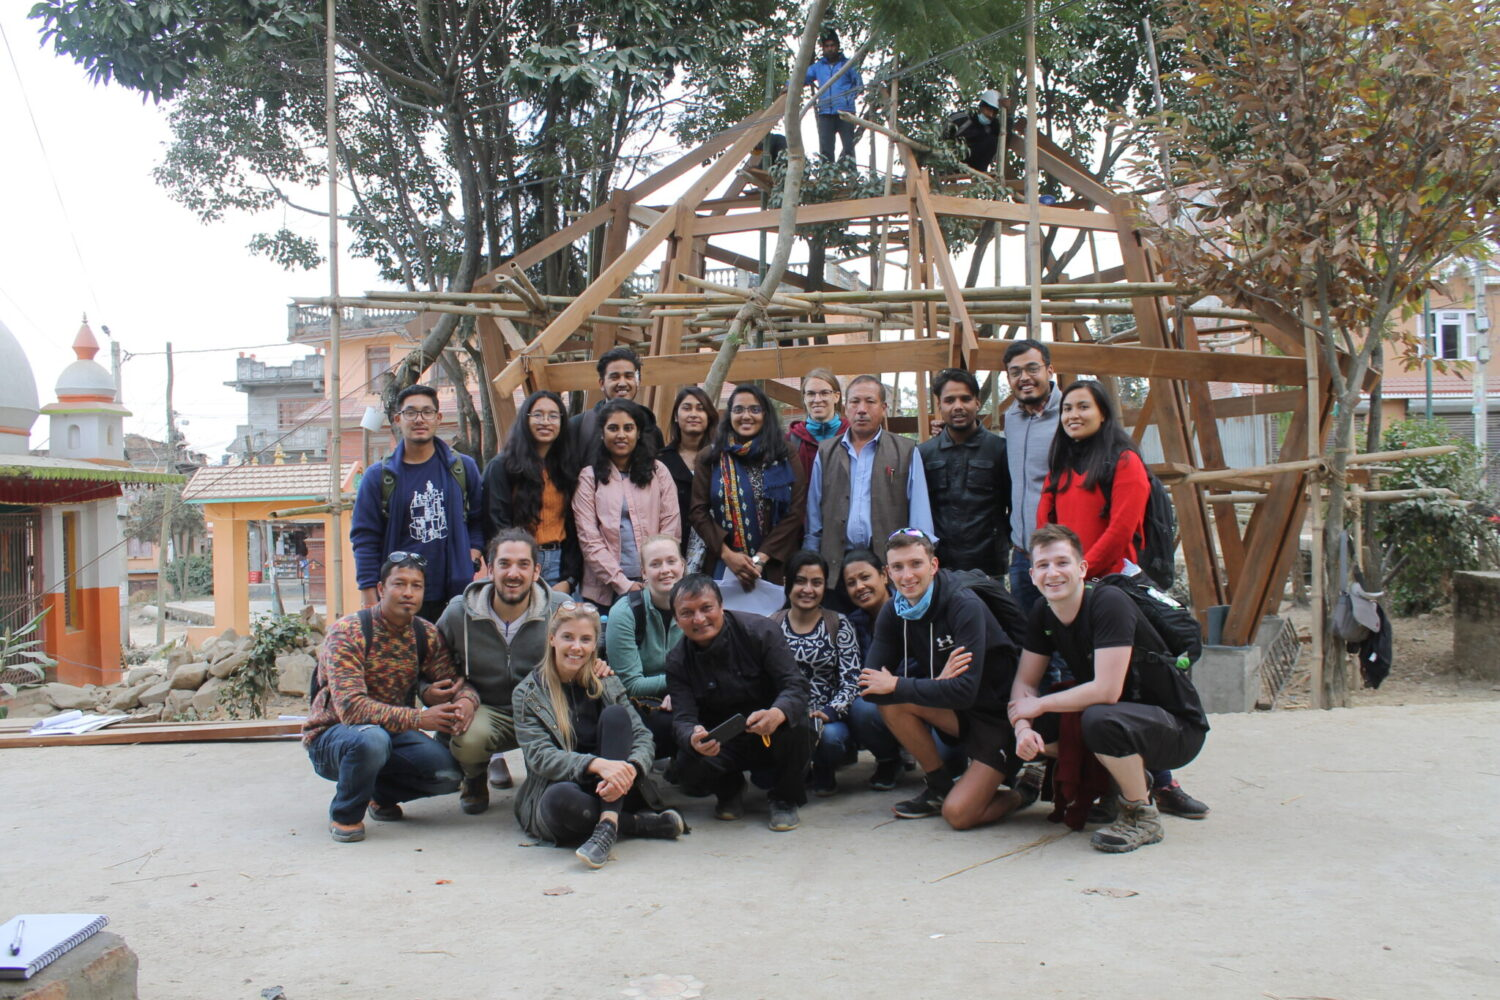 Communities: Key Players for a Sustainable Future